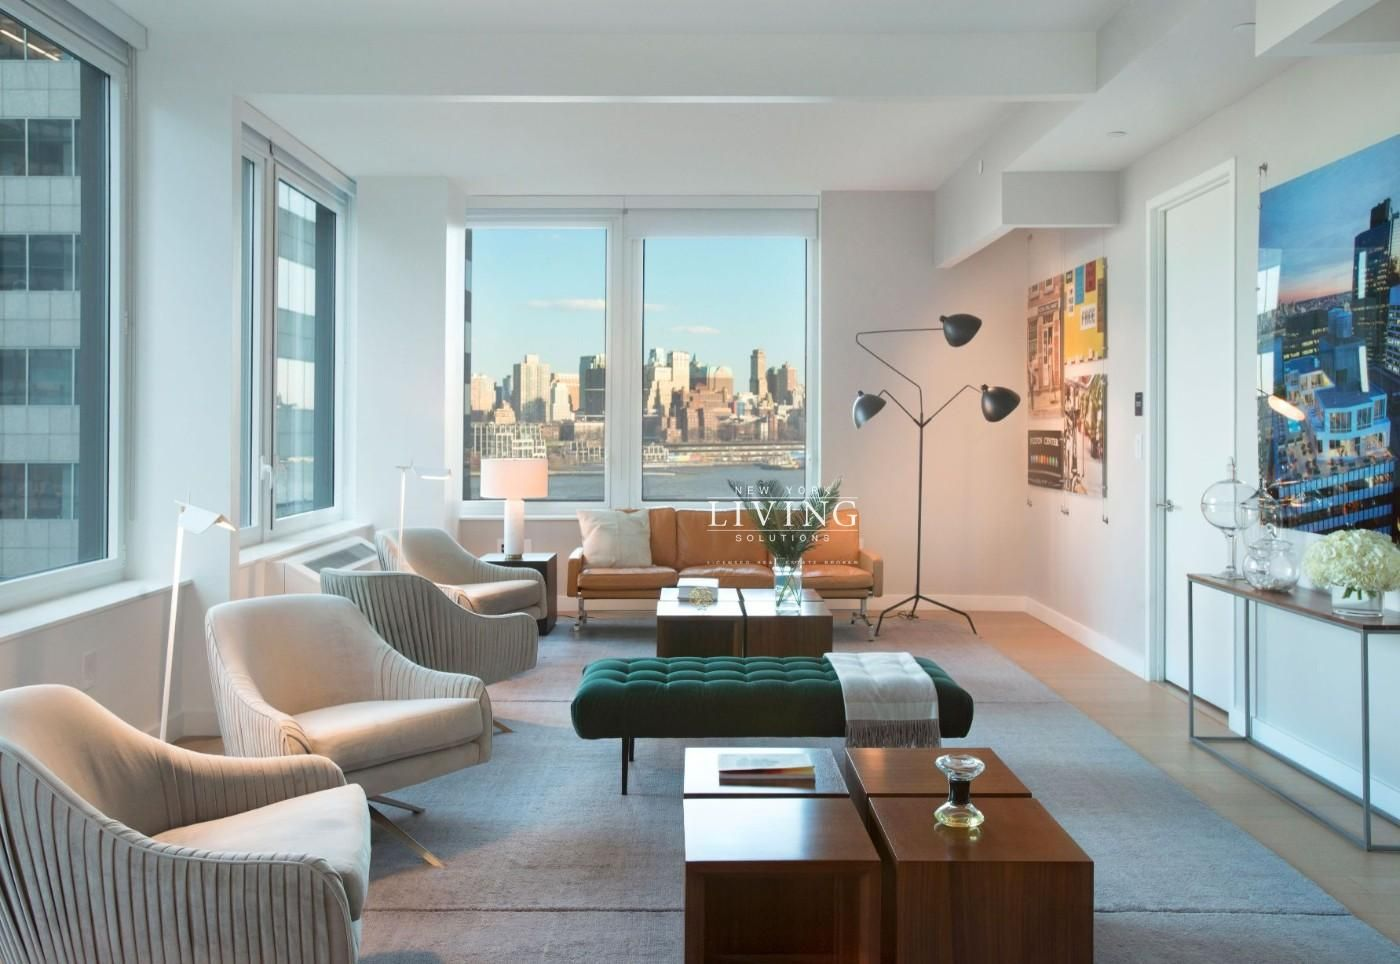 4 Bedrooms 3 Bathrooms Apartment For Sale In Financial District Apartments For Sale Apartments For Rent New York Apartments